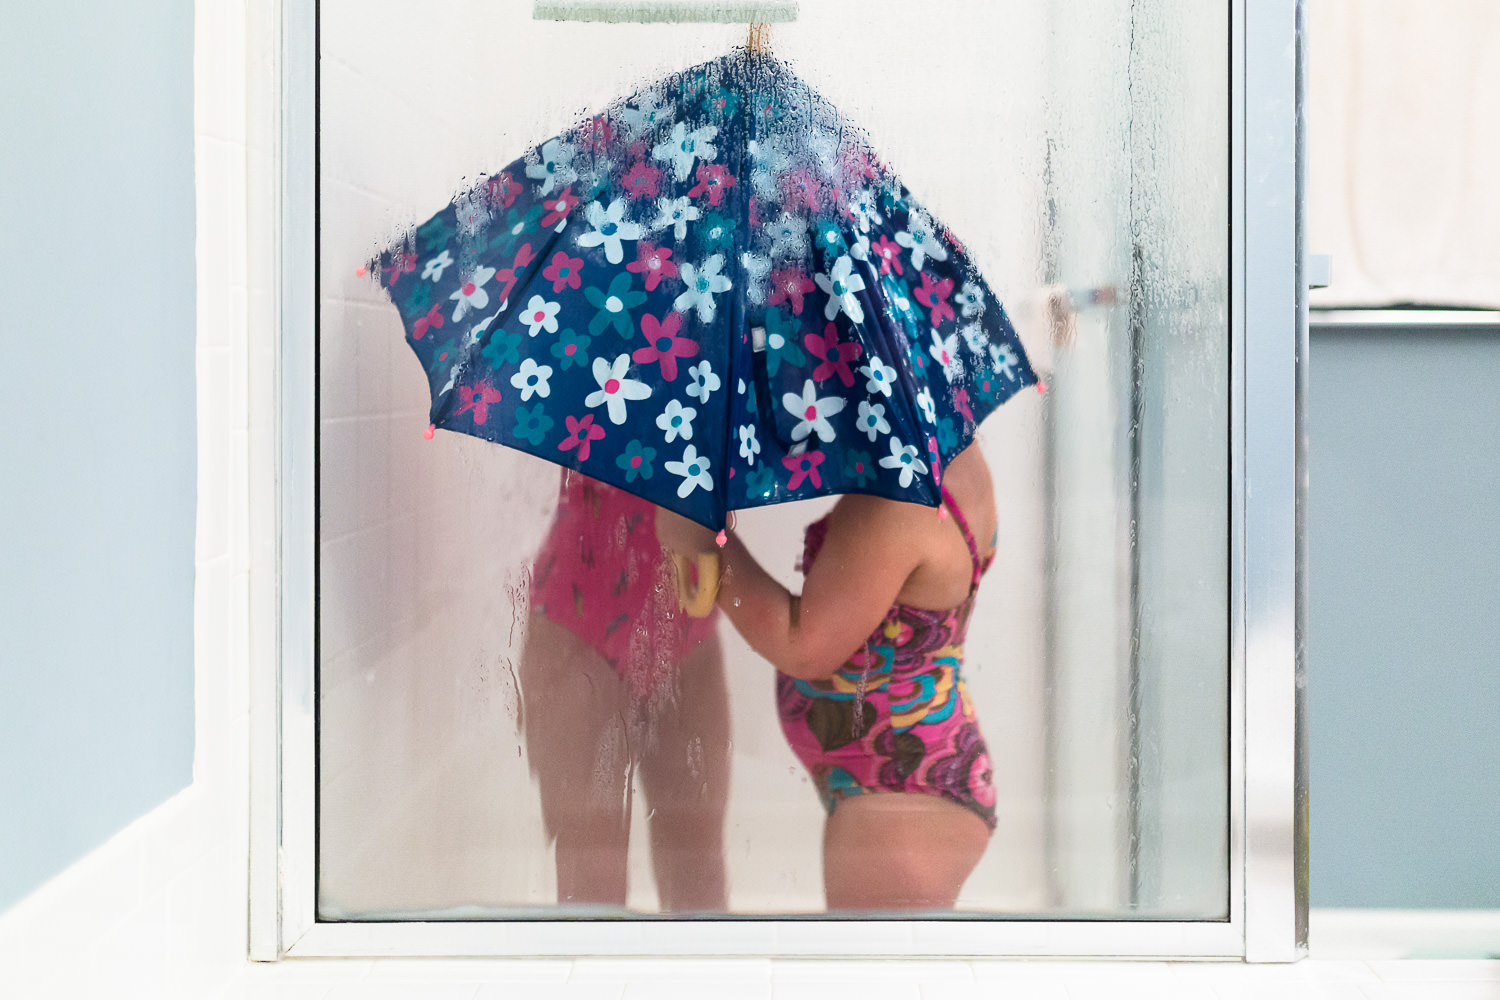 children-shower-umbrella-candid.jpg